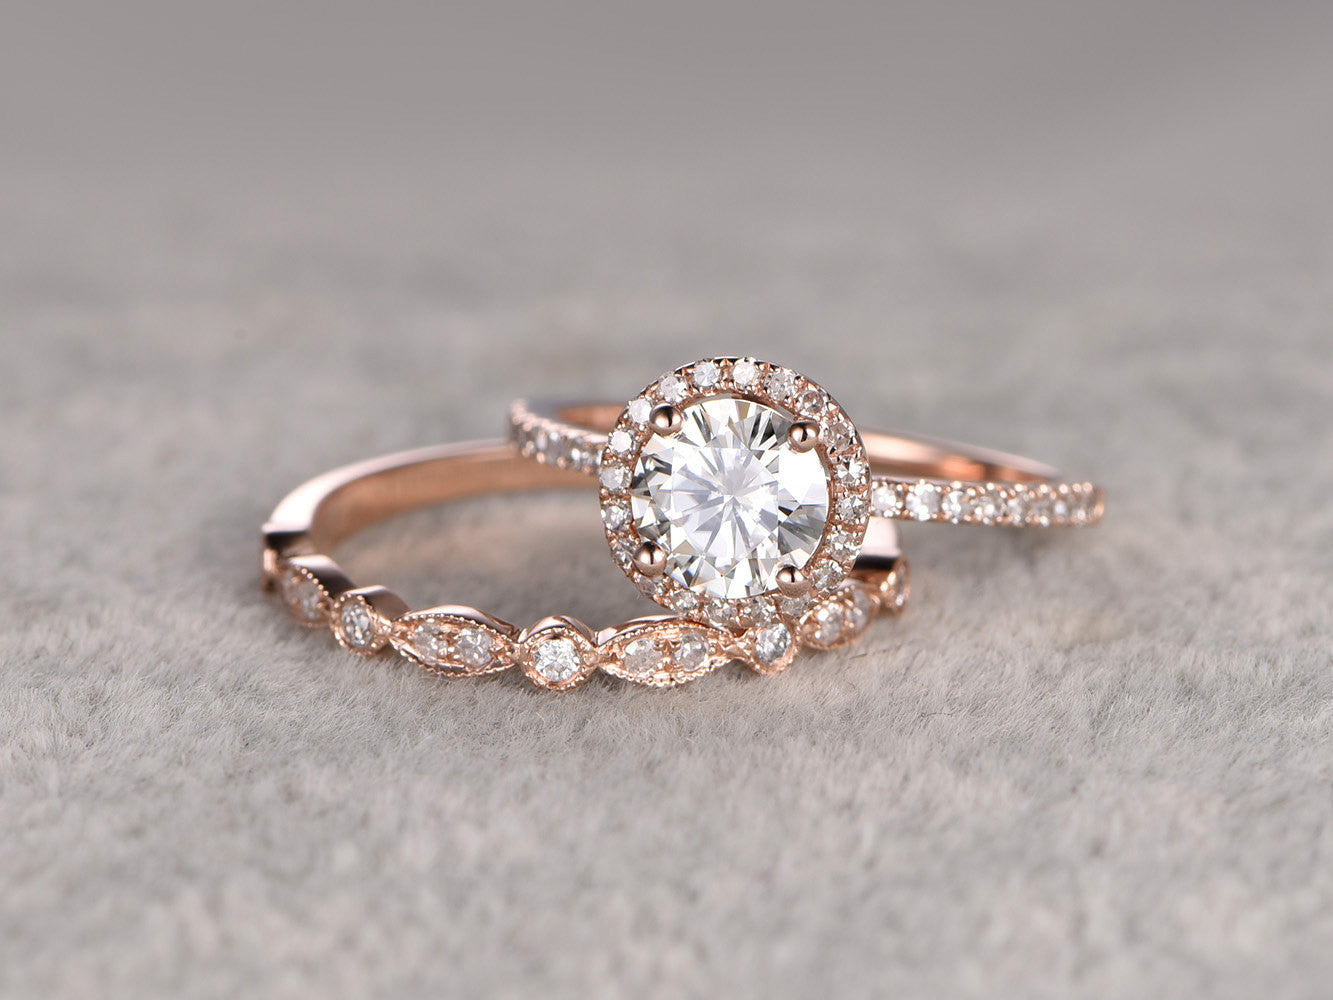 2 Moissanite Bridal Set,Moissanite Engagement ring Rose gold,Diamond wedding band,14k,6.5mm Round Cut,Art Deco eternity